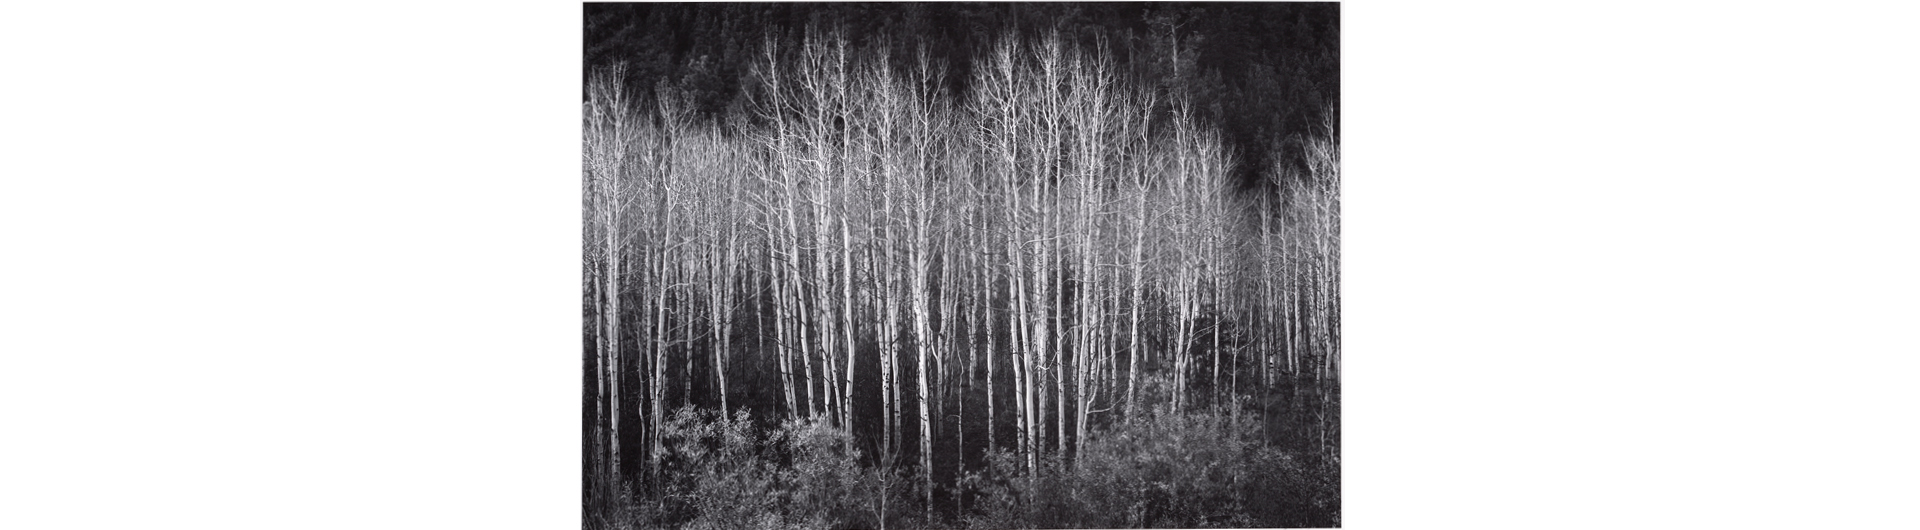 Photograph of Aspens by Ansel Adams